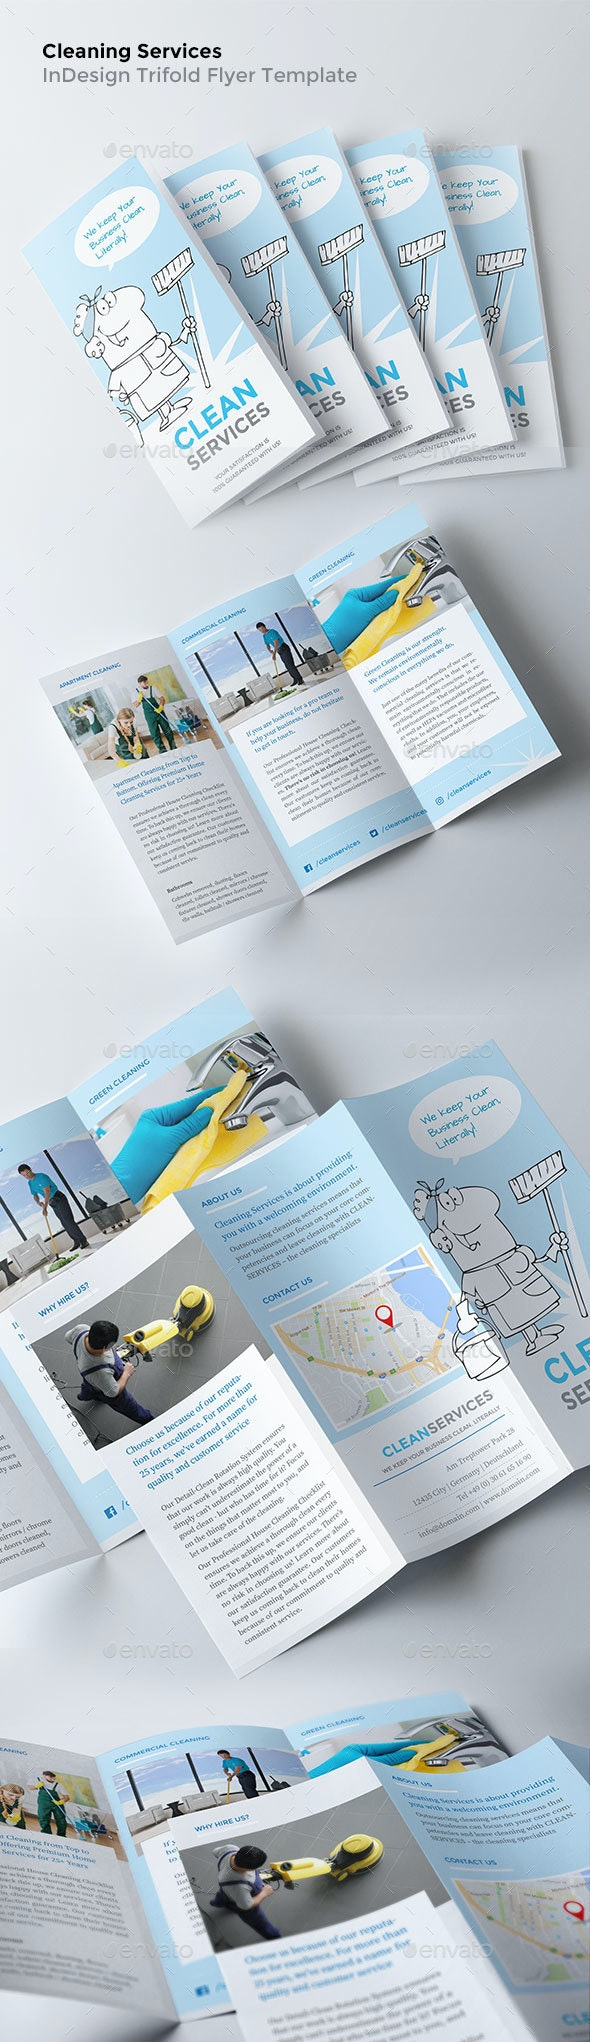 Cleaning Flyers - Print-Ready Trifold Template - Corporate Flyers